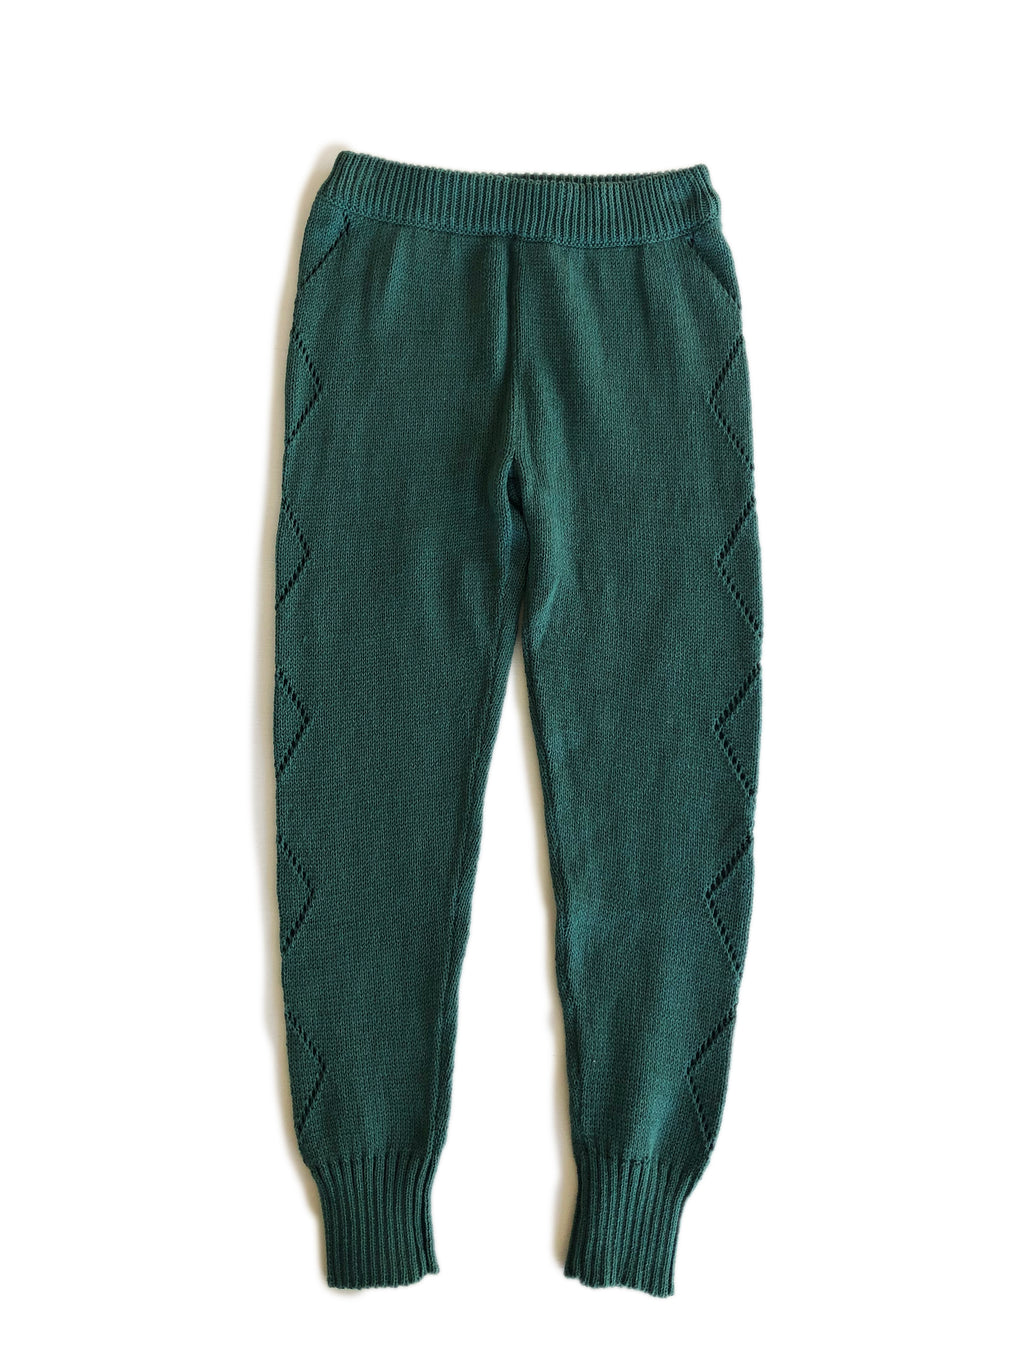 Knitted Leggings - Green Hills